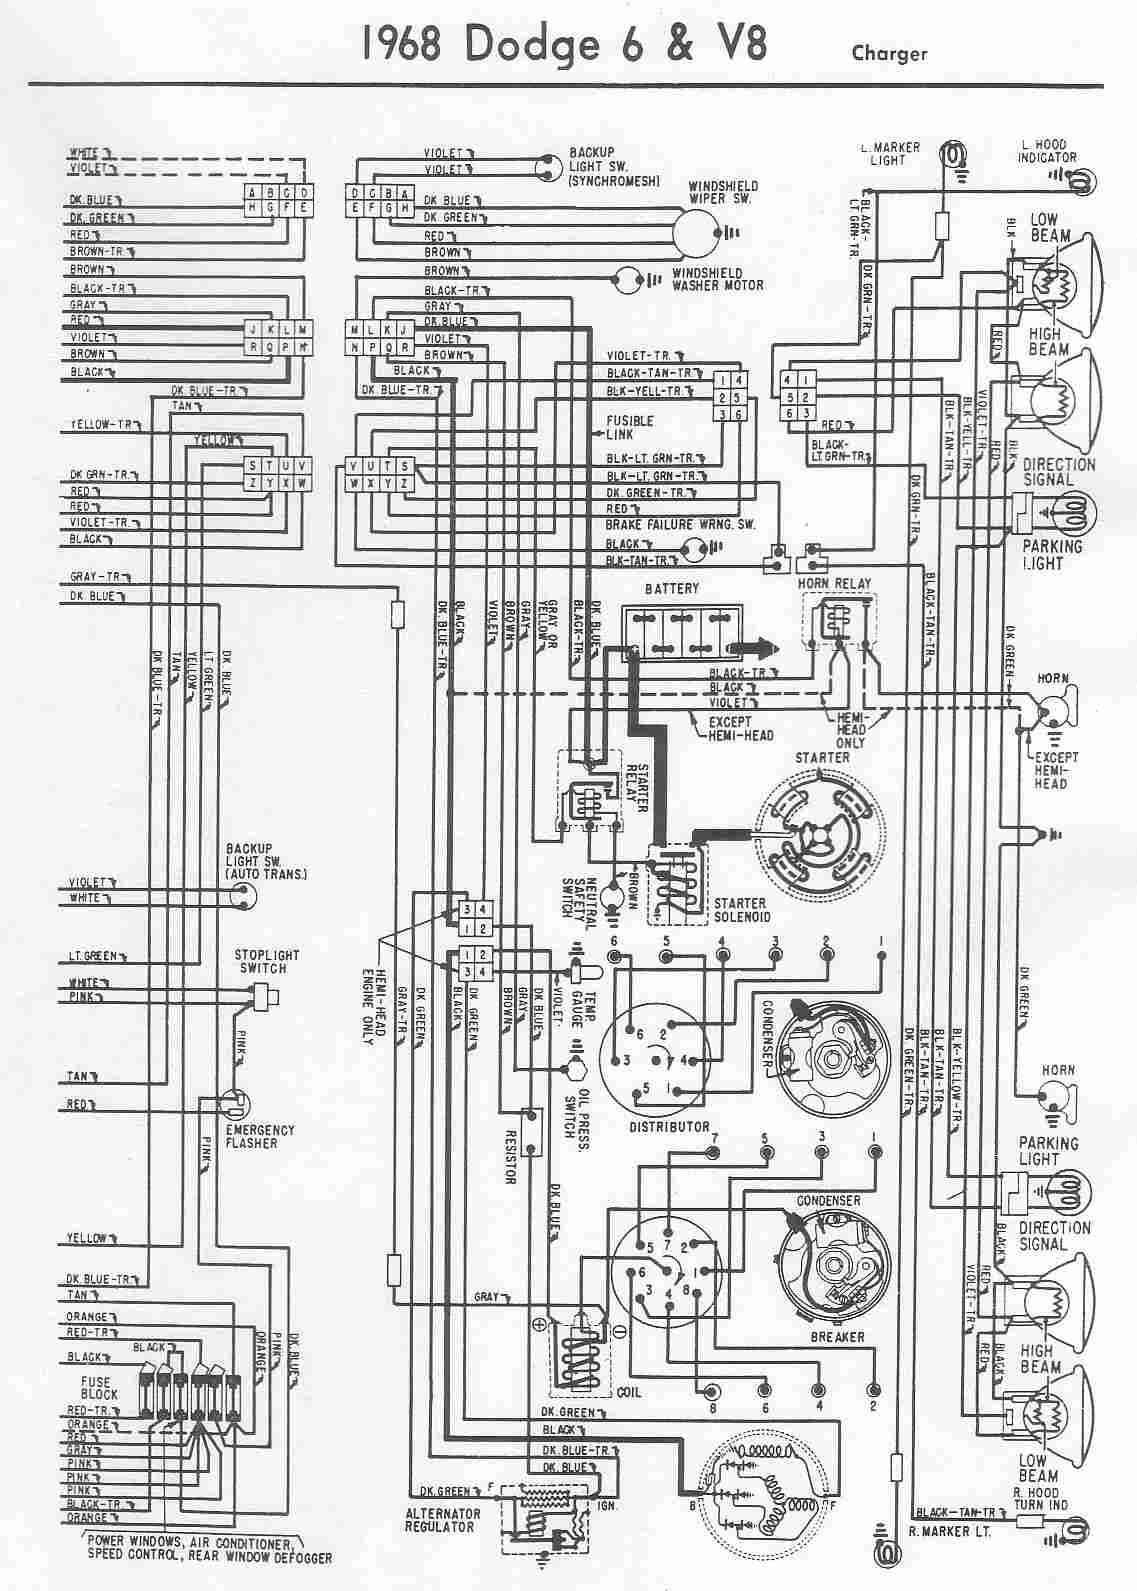 Dodge Car Manuals Wiring Diagrams Pdf Fault Codes 1996 Ram 2500 Trailer Diagram Download